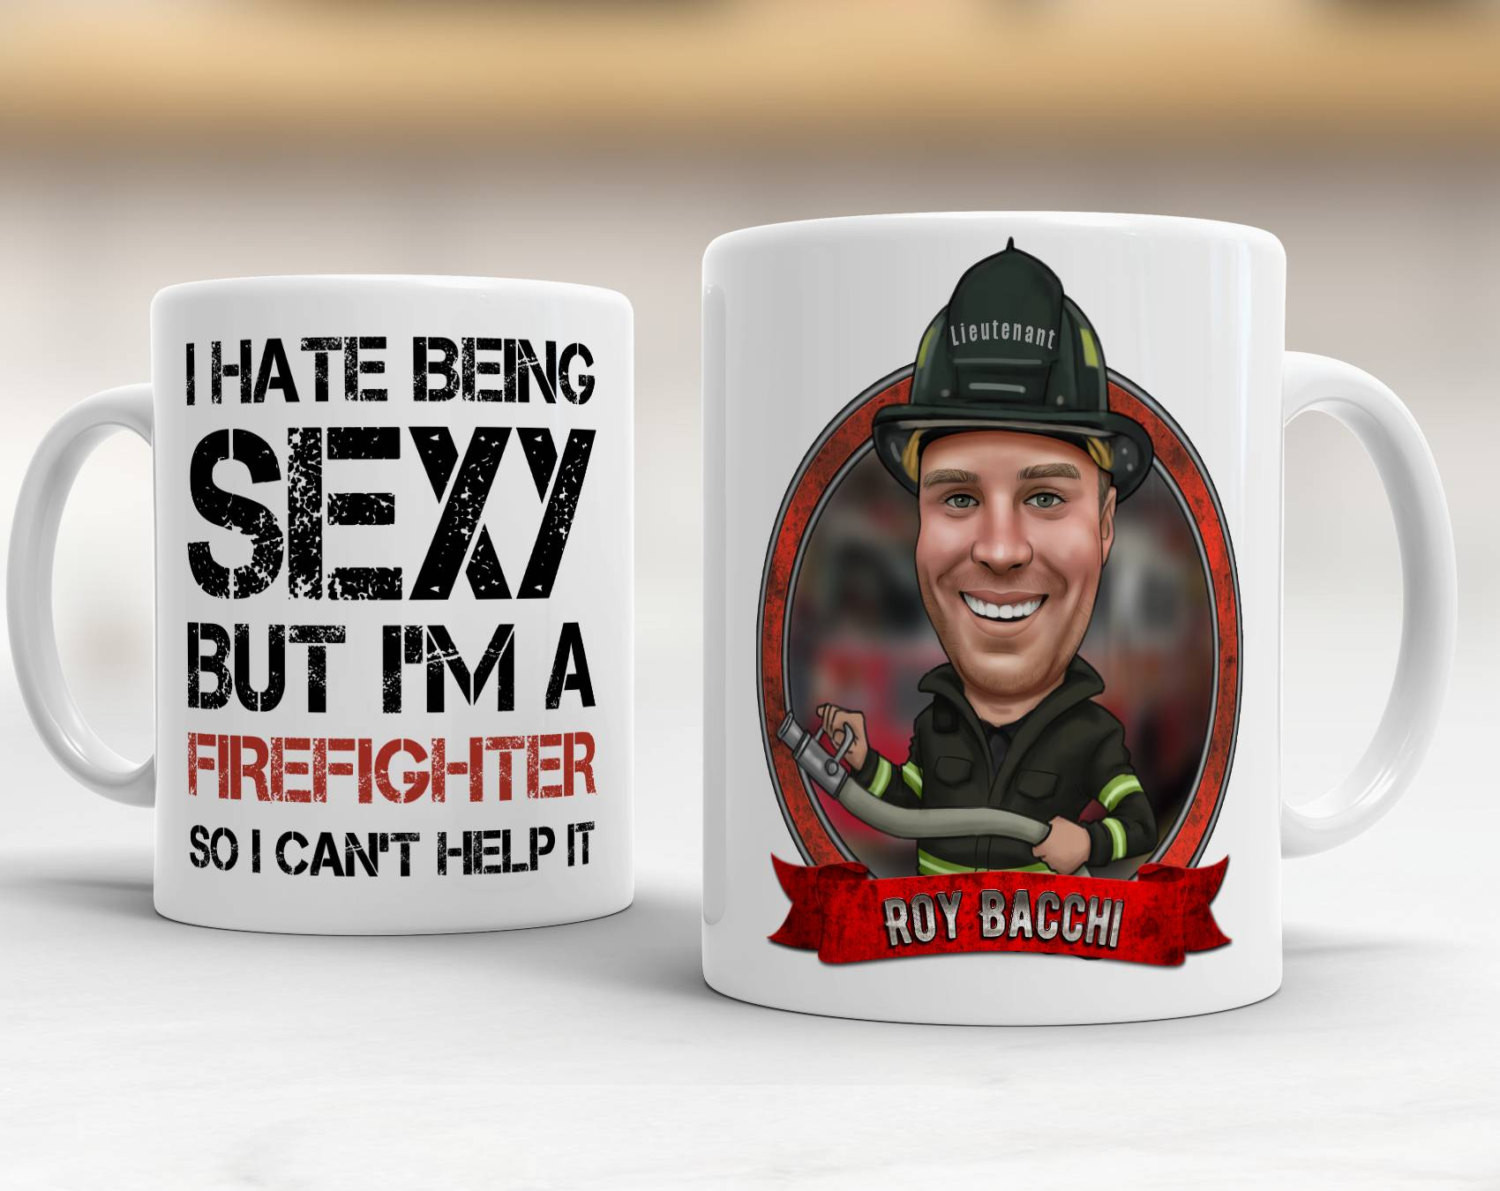 Best ideas about Fireman Gift Ideas . Save or Pin Custom Firefighter Gift Ideas Gift For Firefighter Now.